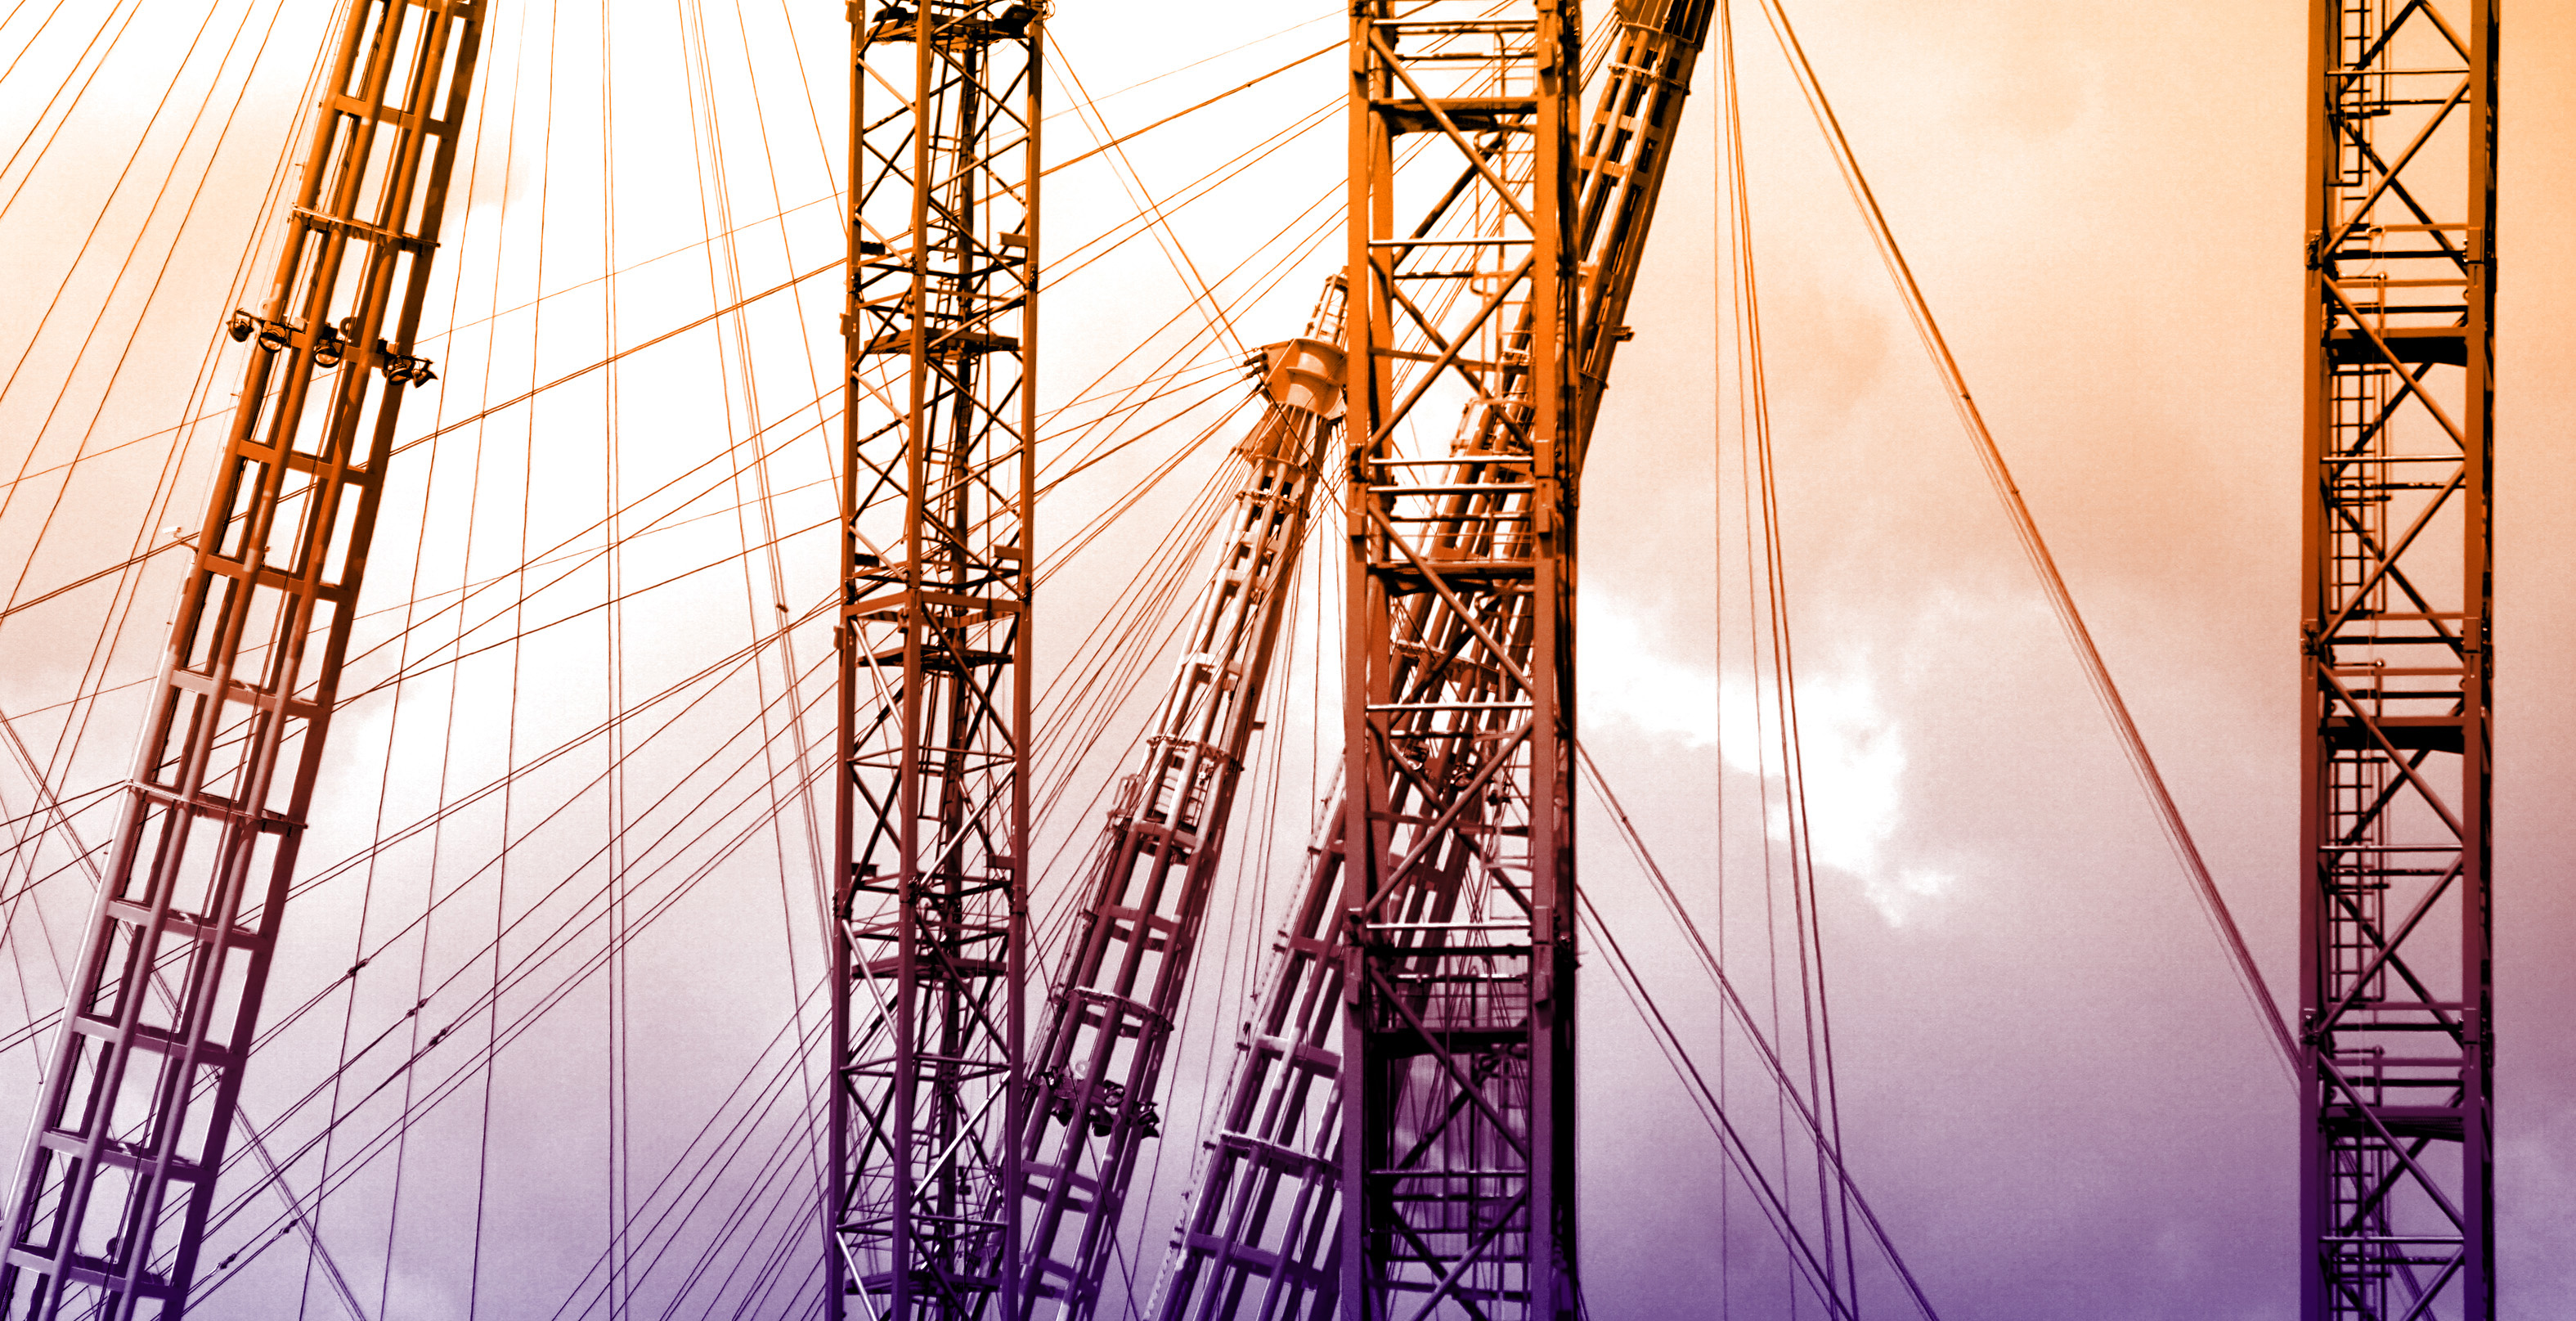 Steel cables - colorized photo